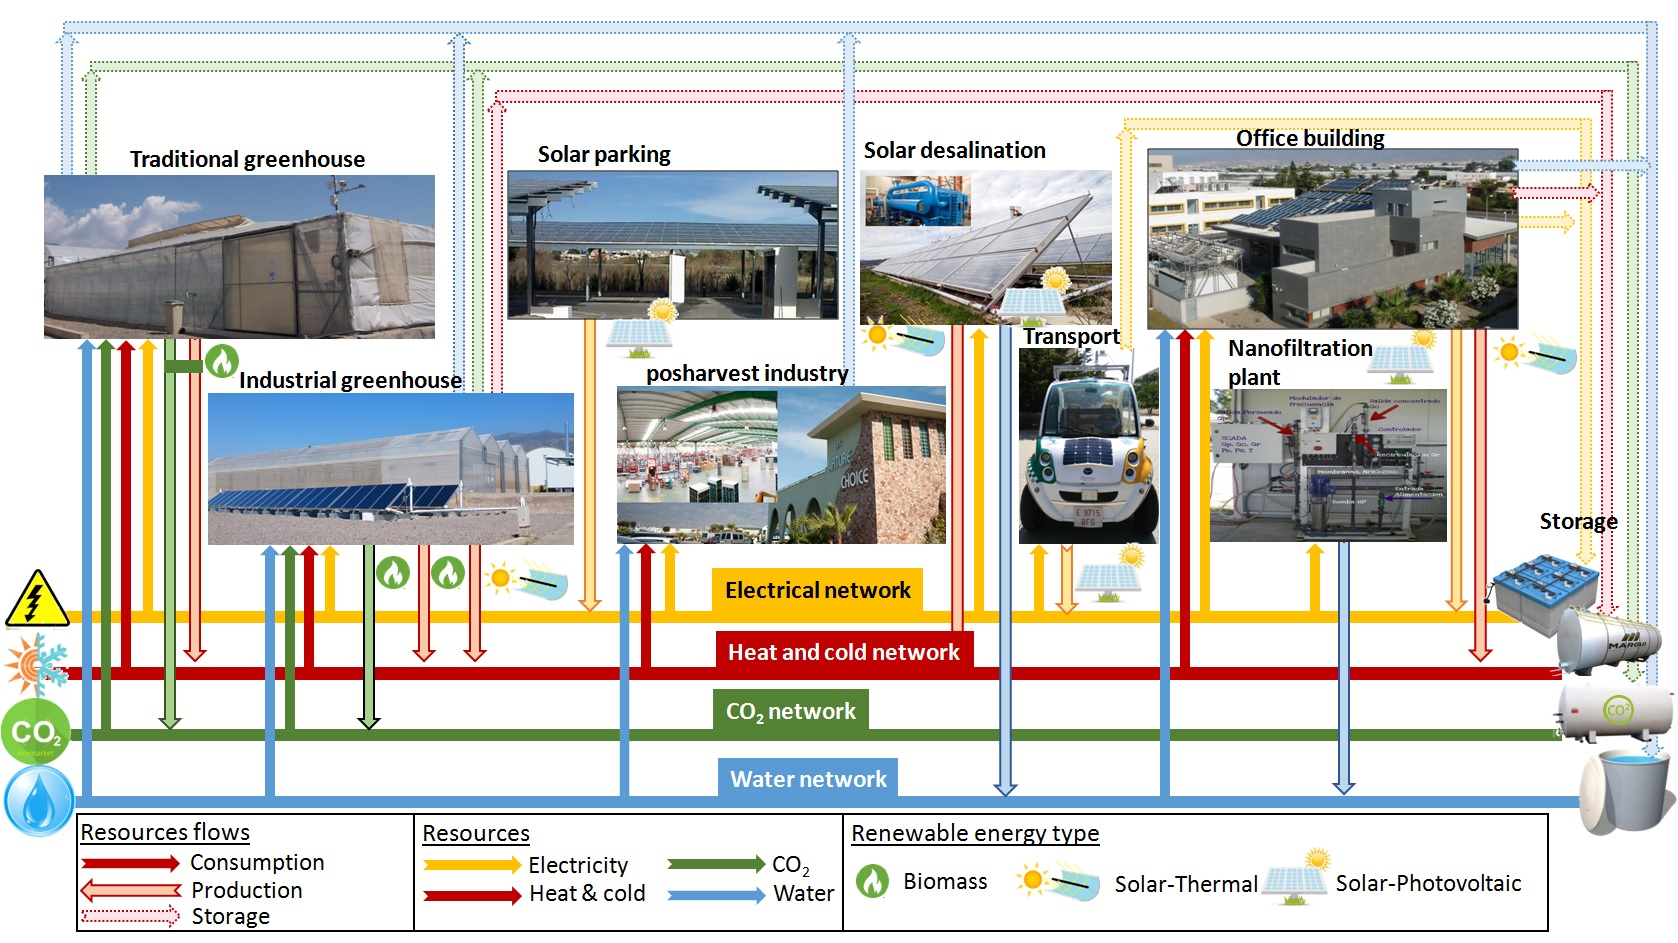 Flow of heterogeneous resources among the different elements of the agro-industrial district